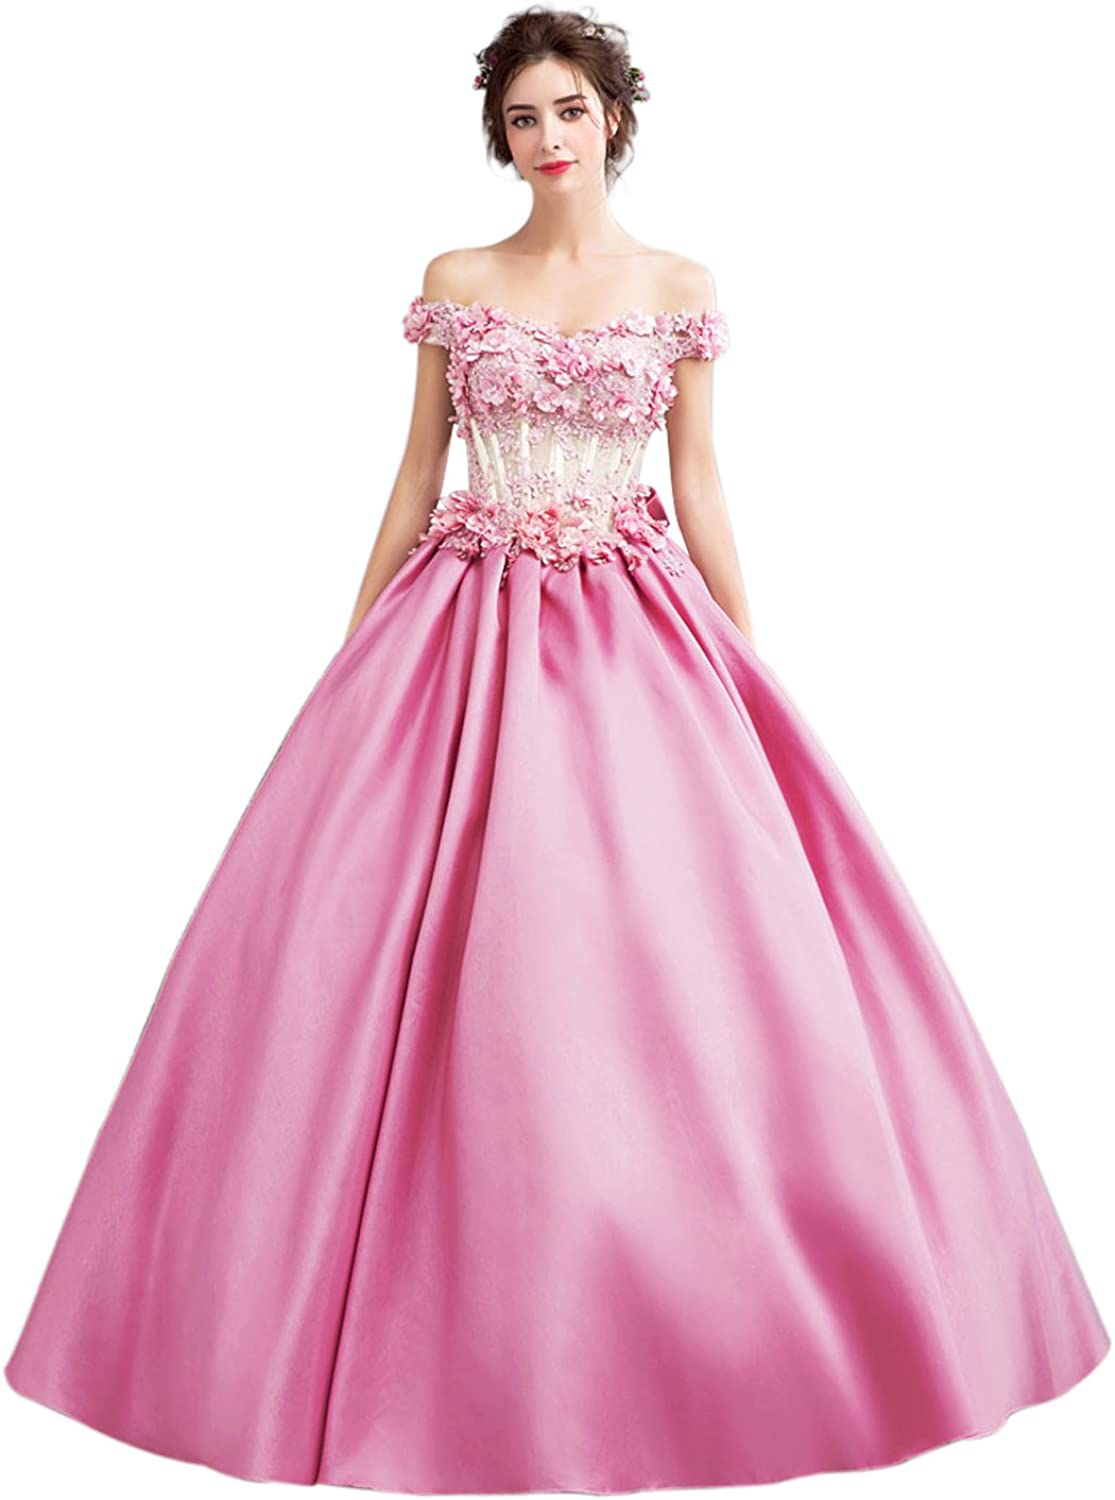 Epinkbridal Princess Ball Gown Off Shoulder Quinceanera Dress Flower Beaded Sweet 15 Dresses